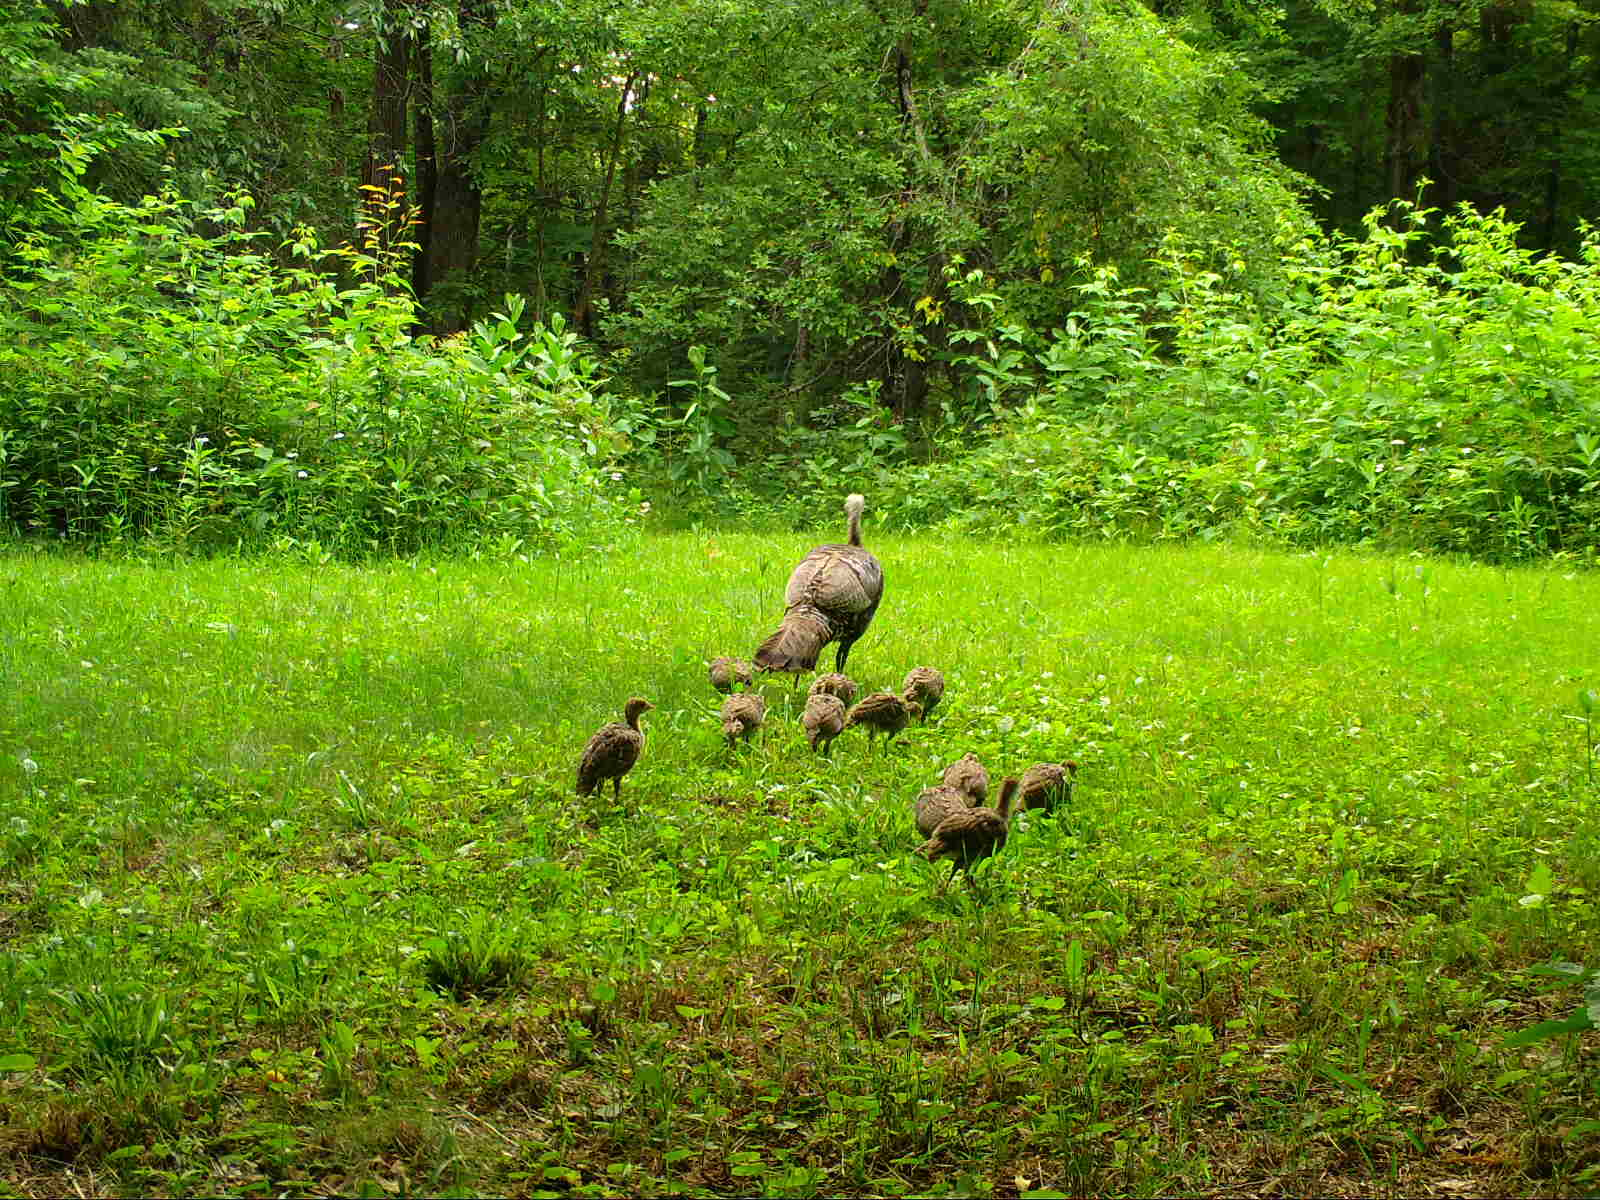 Wild turkey and group of young